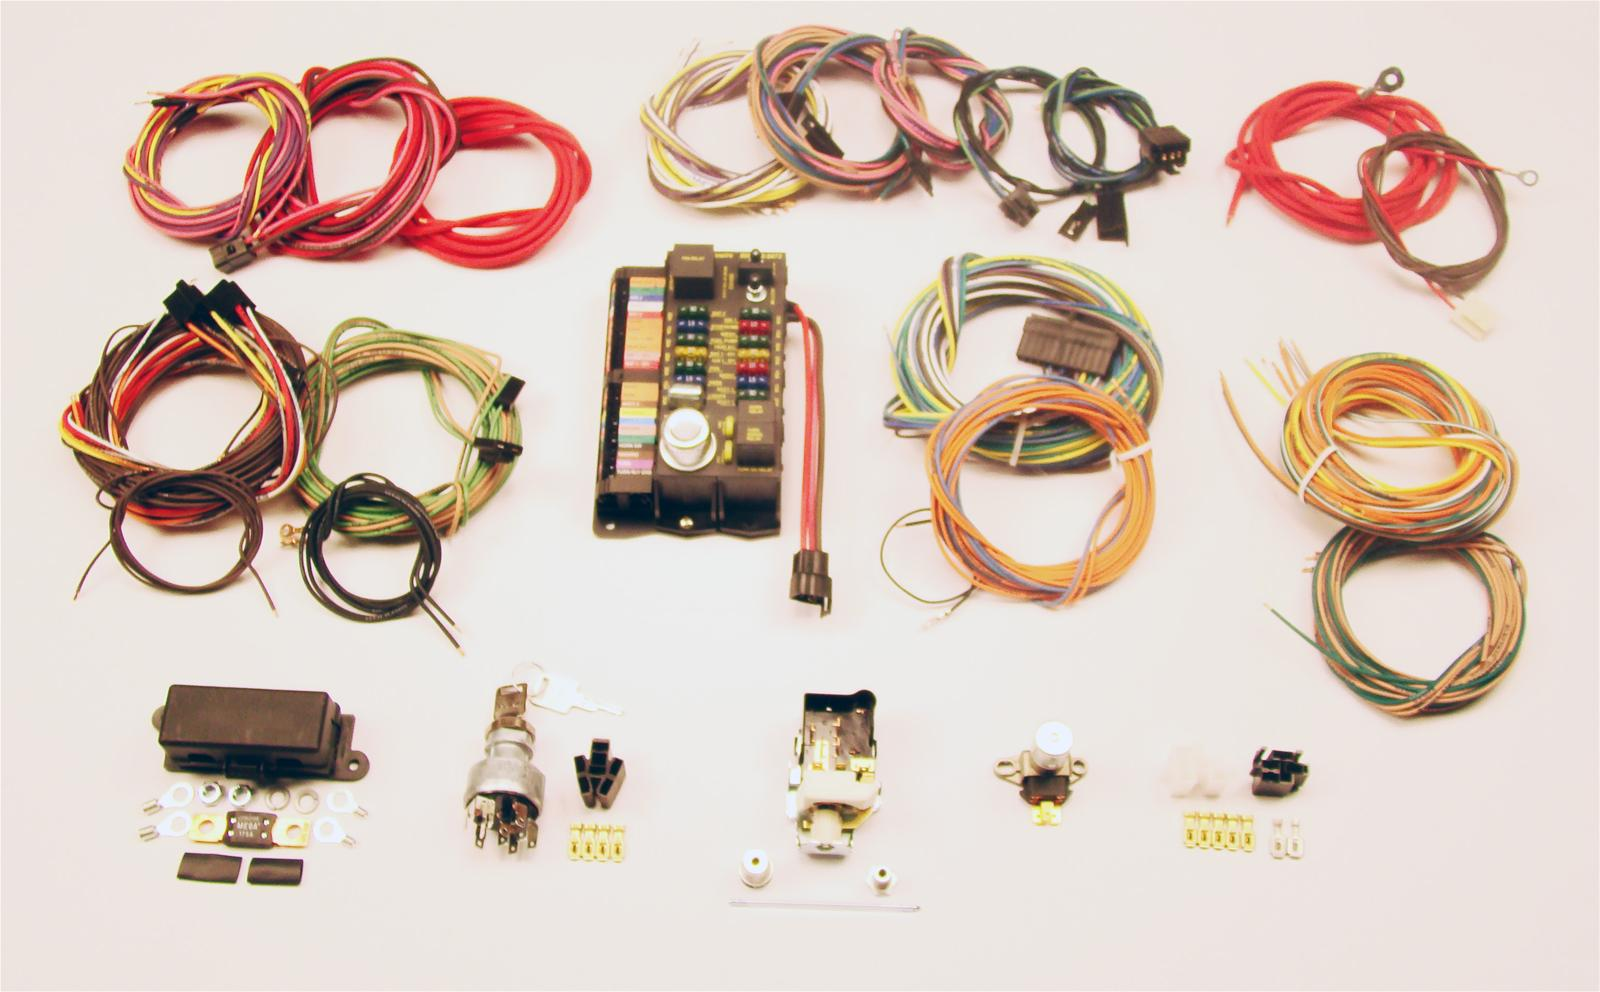 AWW 500695_xl american autowire highway 22 wiring harness kits 500695 free highway 22 wiring diagram at eliteediting.co